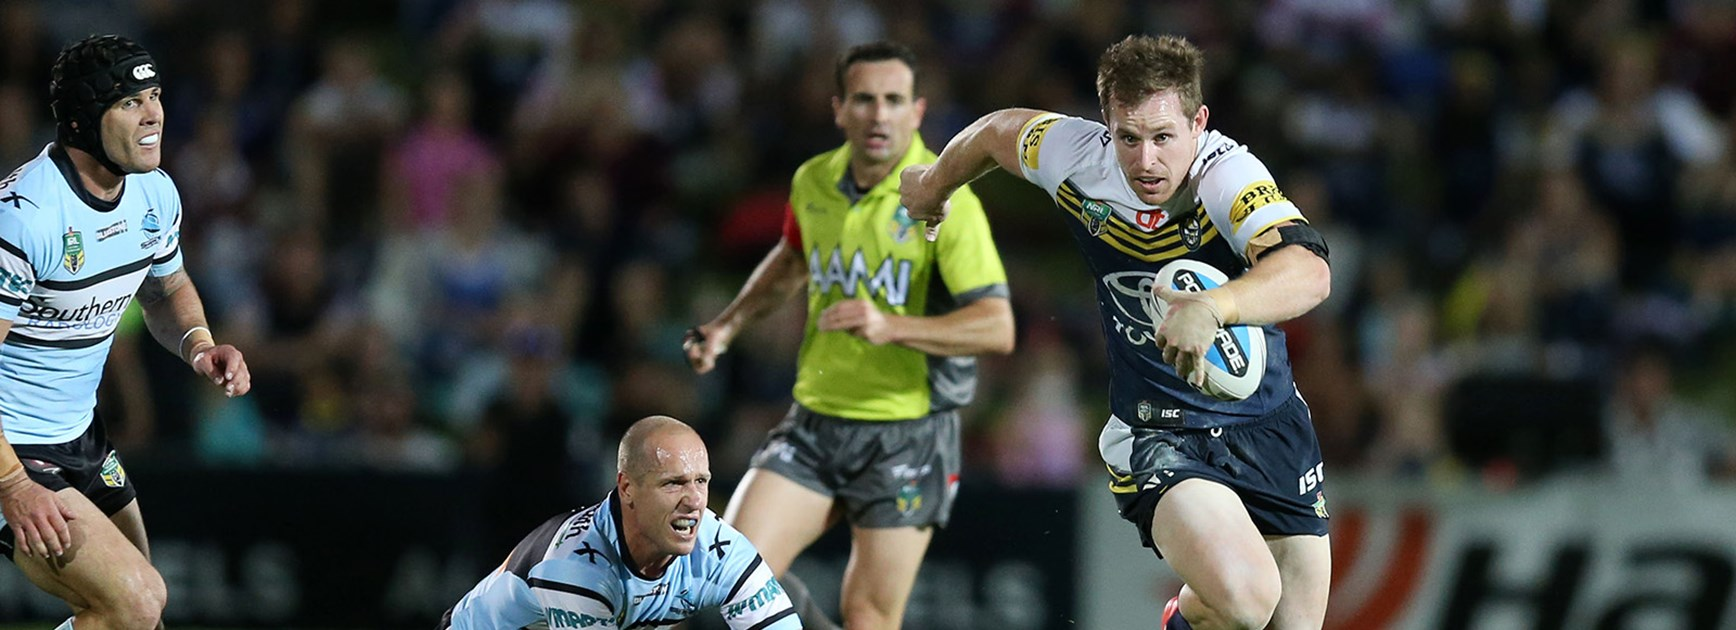 Cowboys five-eighth Michael Morgan played a starring role in his side's semi-final win over the Sharks.